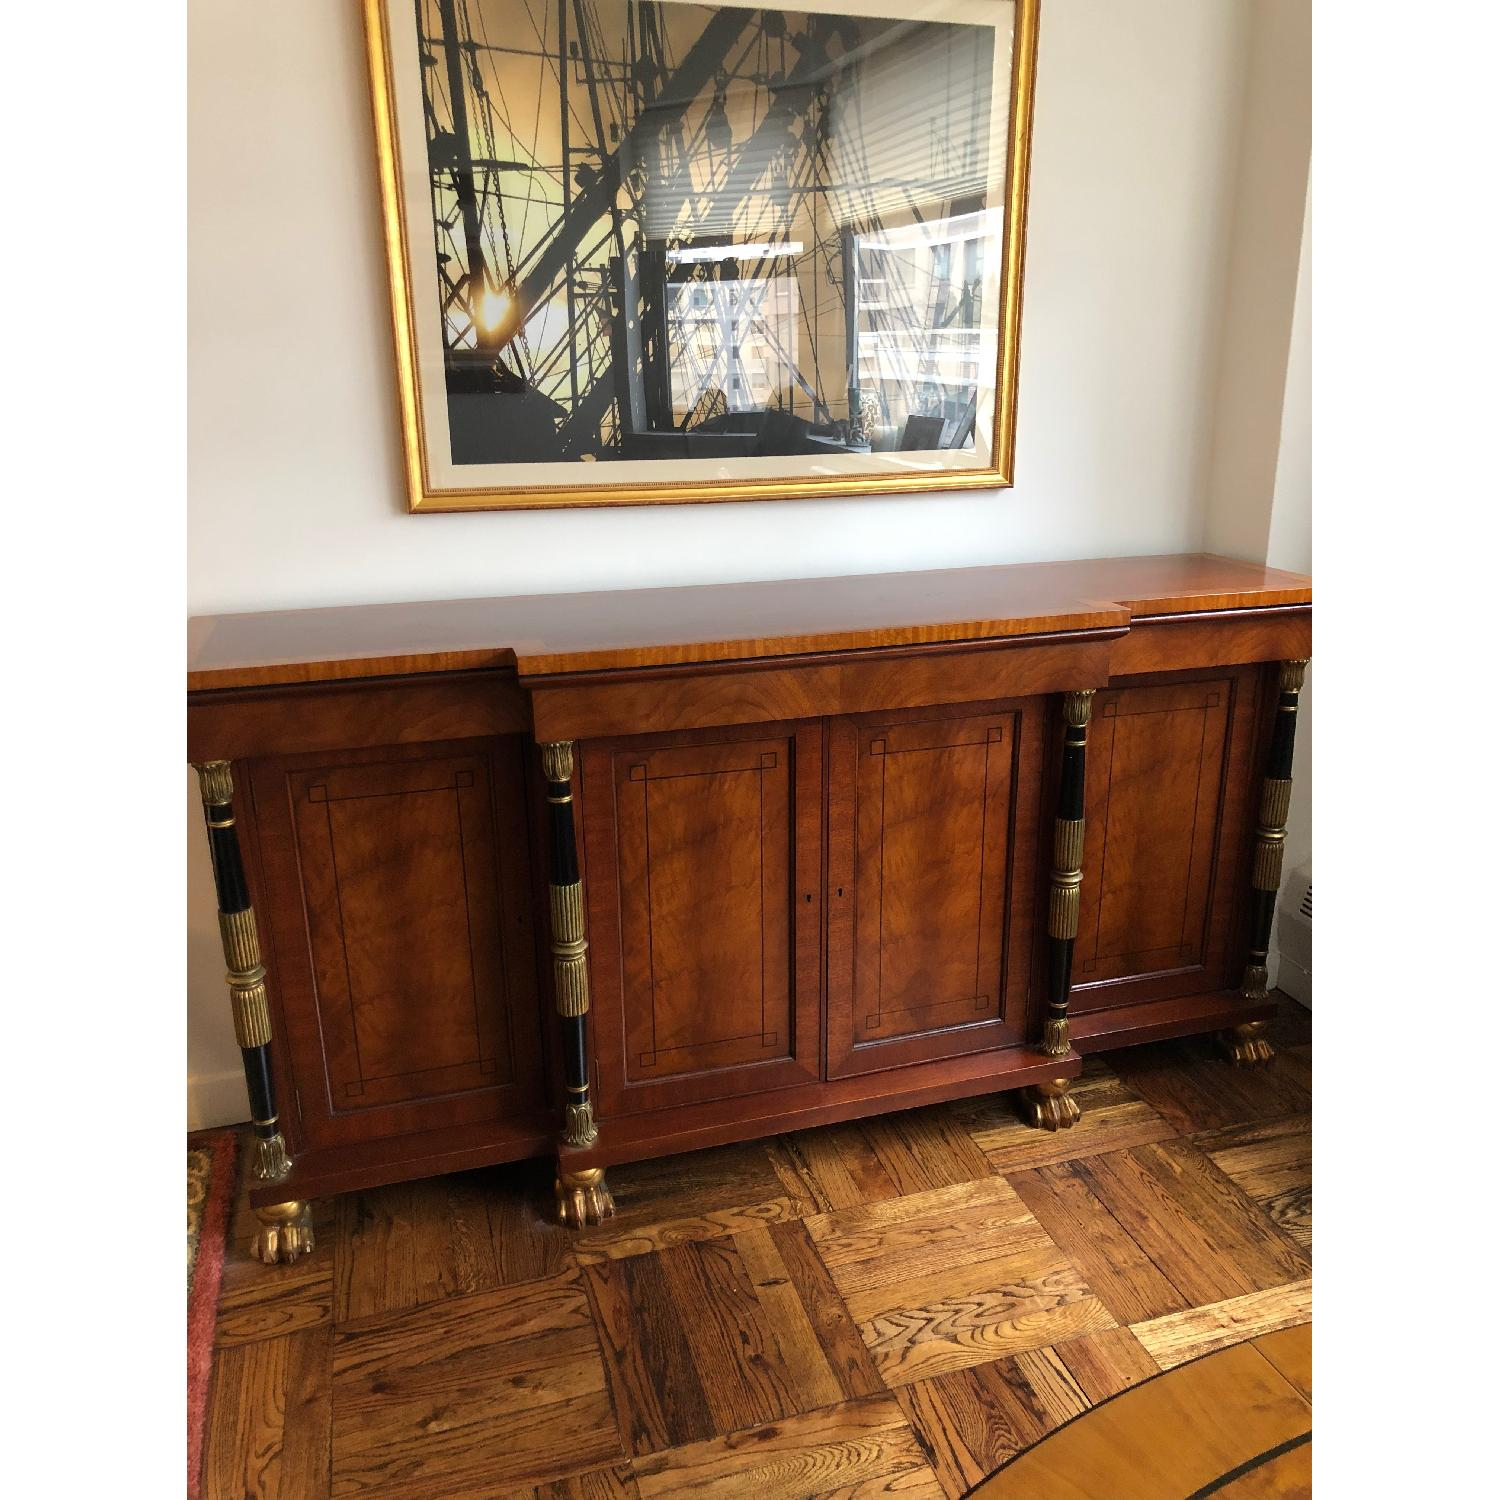 Baker Furniture Barbara Barry Credenza